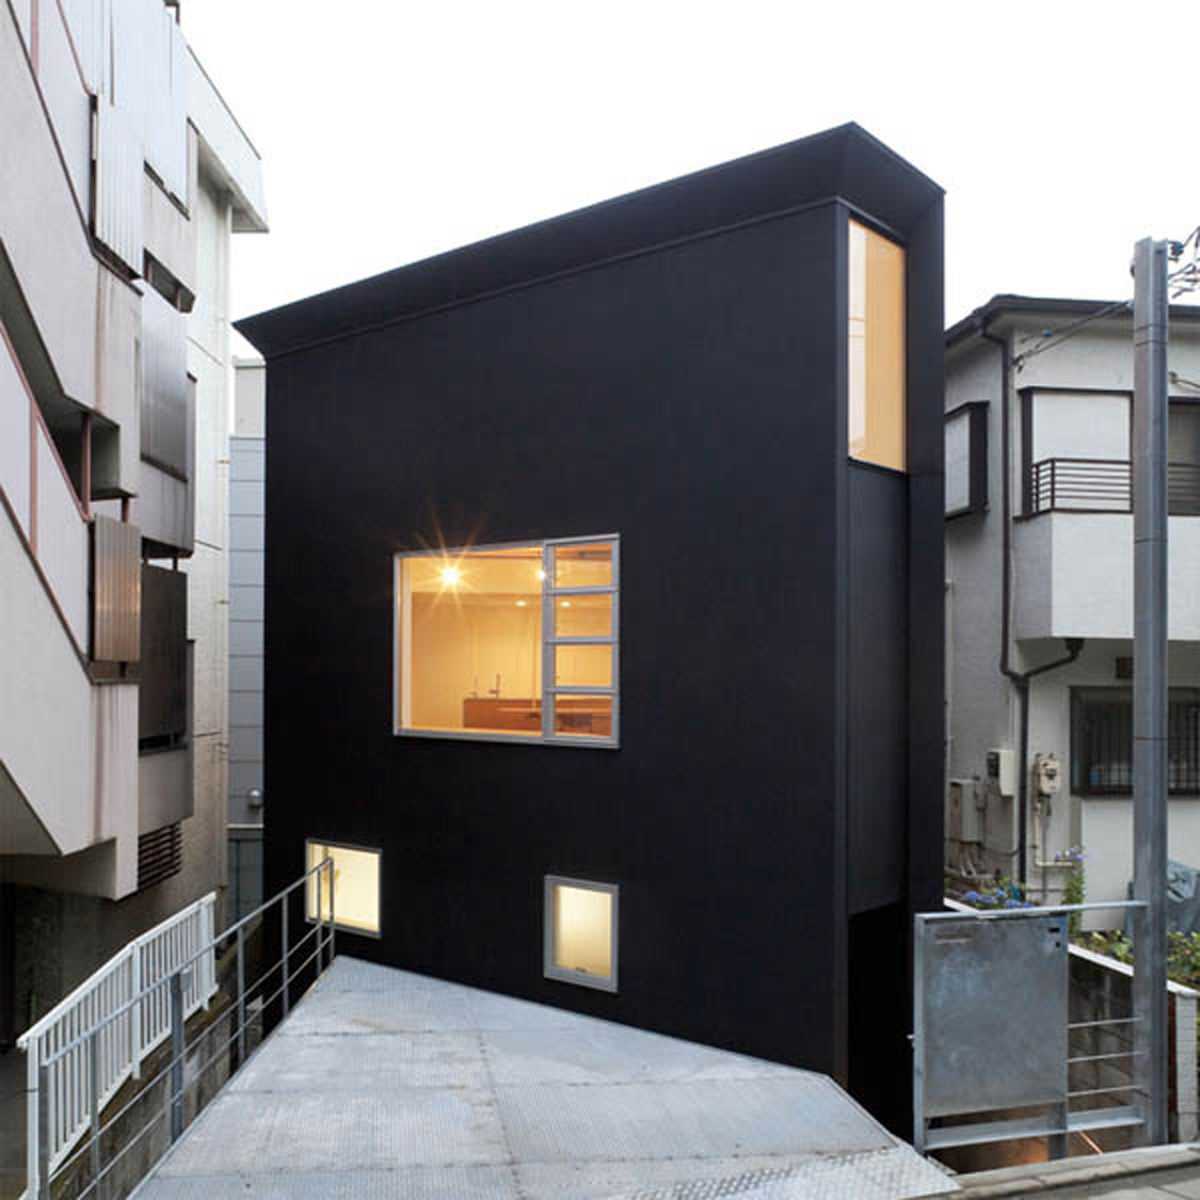 Minimalist japanese house layouts for Small urban house plans